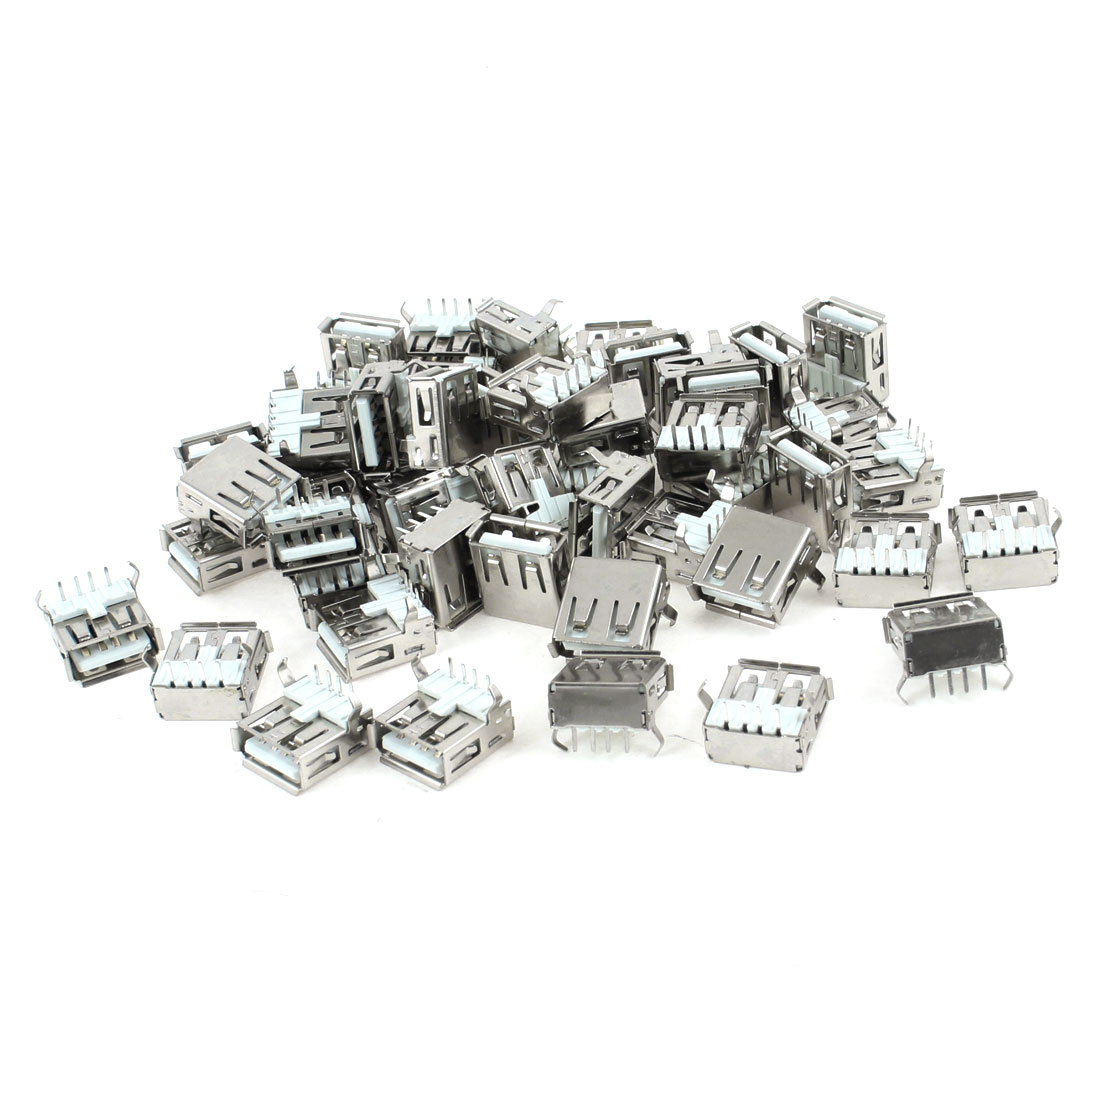 50 Pcs USB Type A Right Angle 4-Pin DIP Female Jack Socket Connector